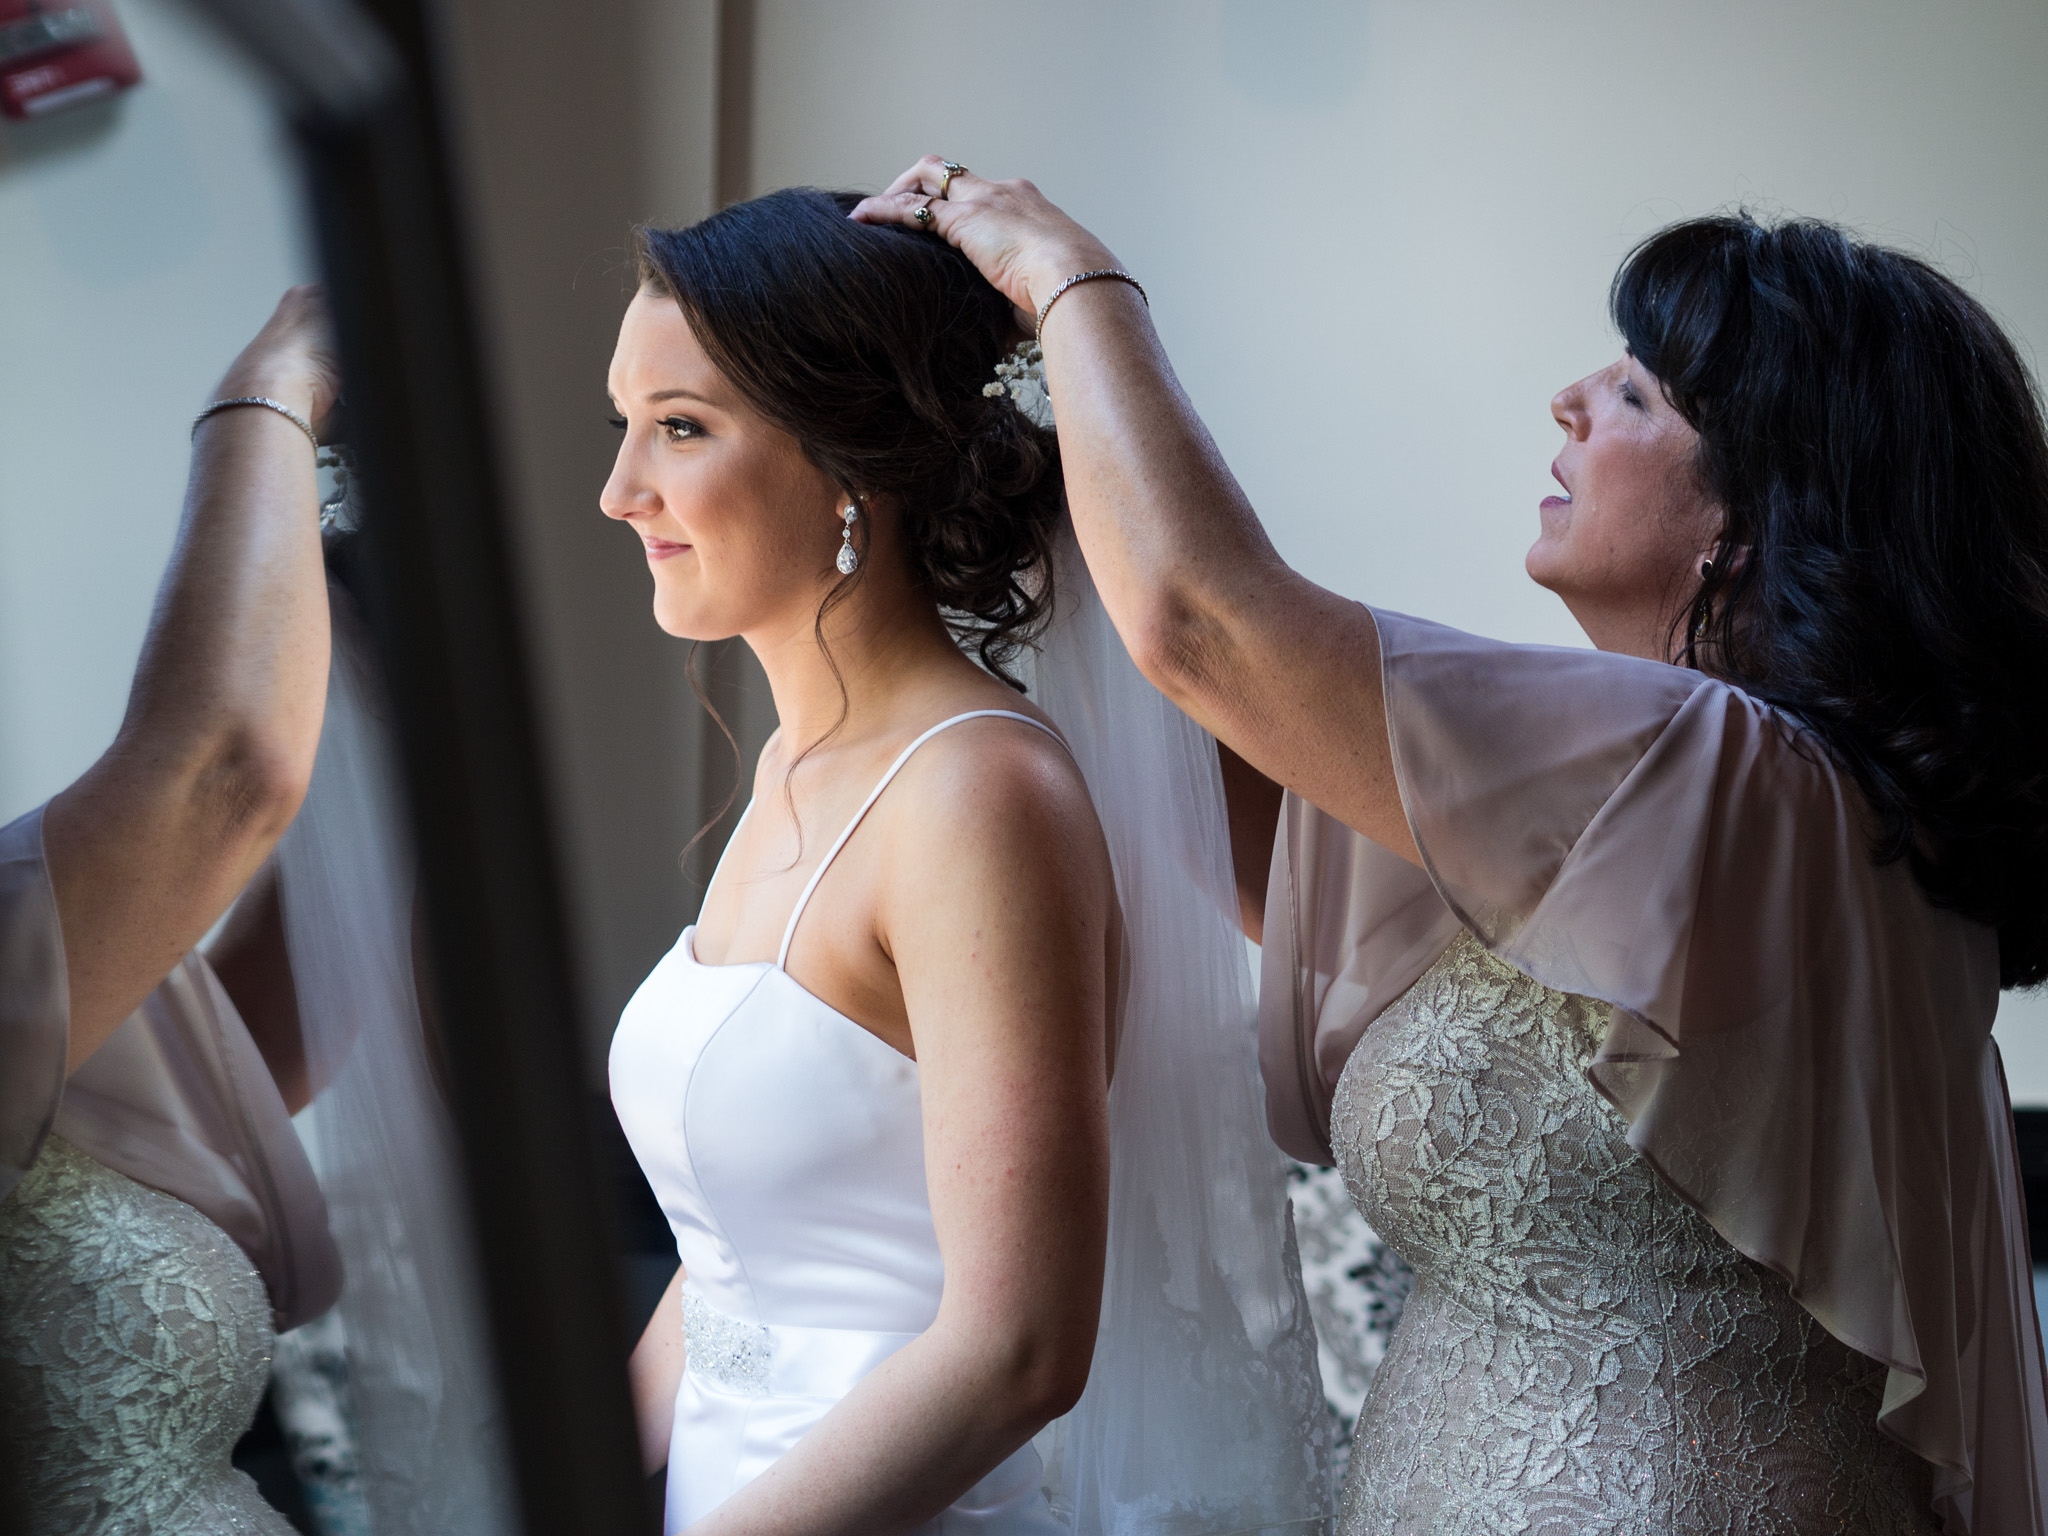 214 Martin Street, Wedding Photography, Wedding Dress, Getting Ready, Finishing Touches, Bride, Mother, Reflections